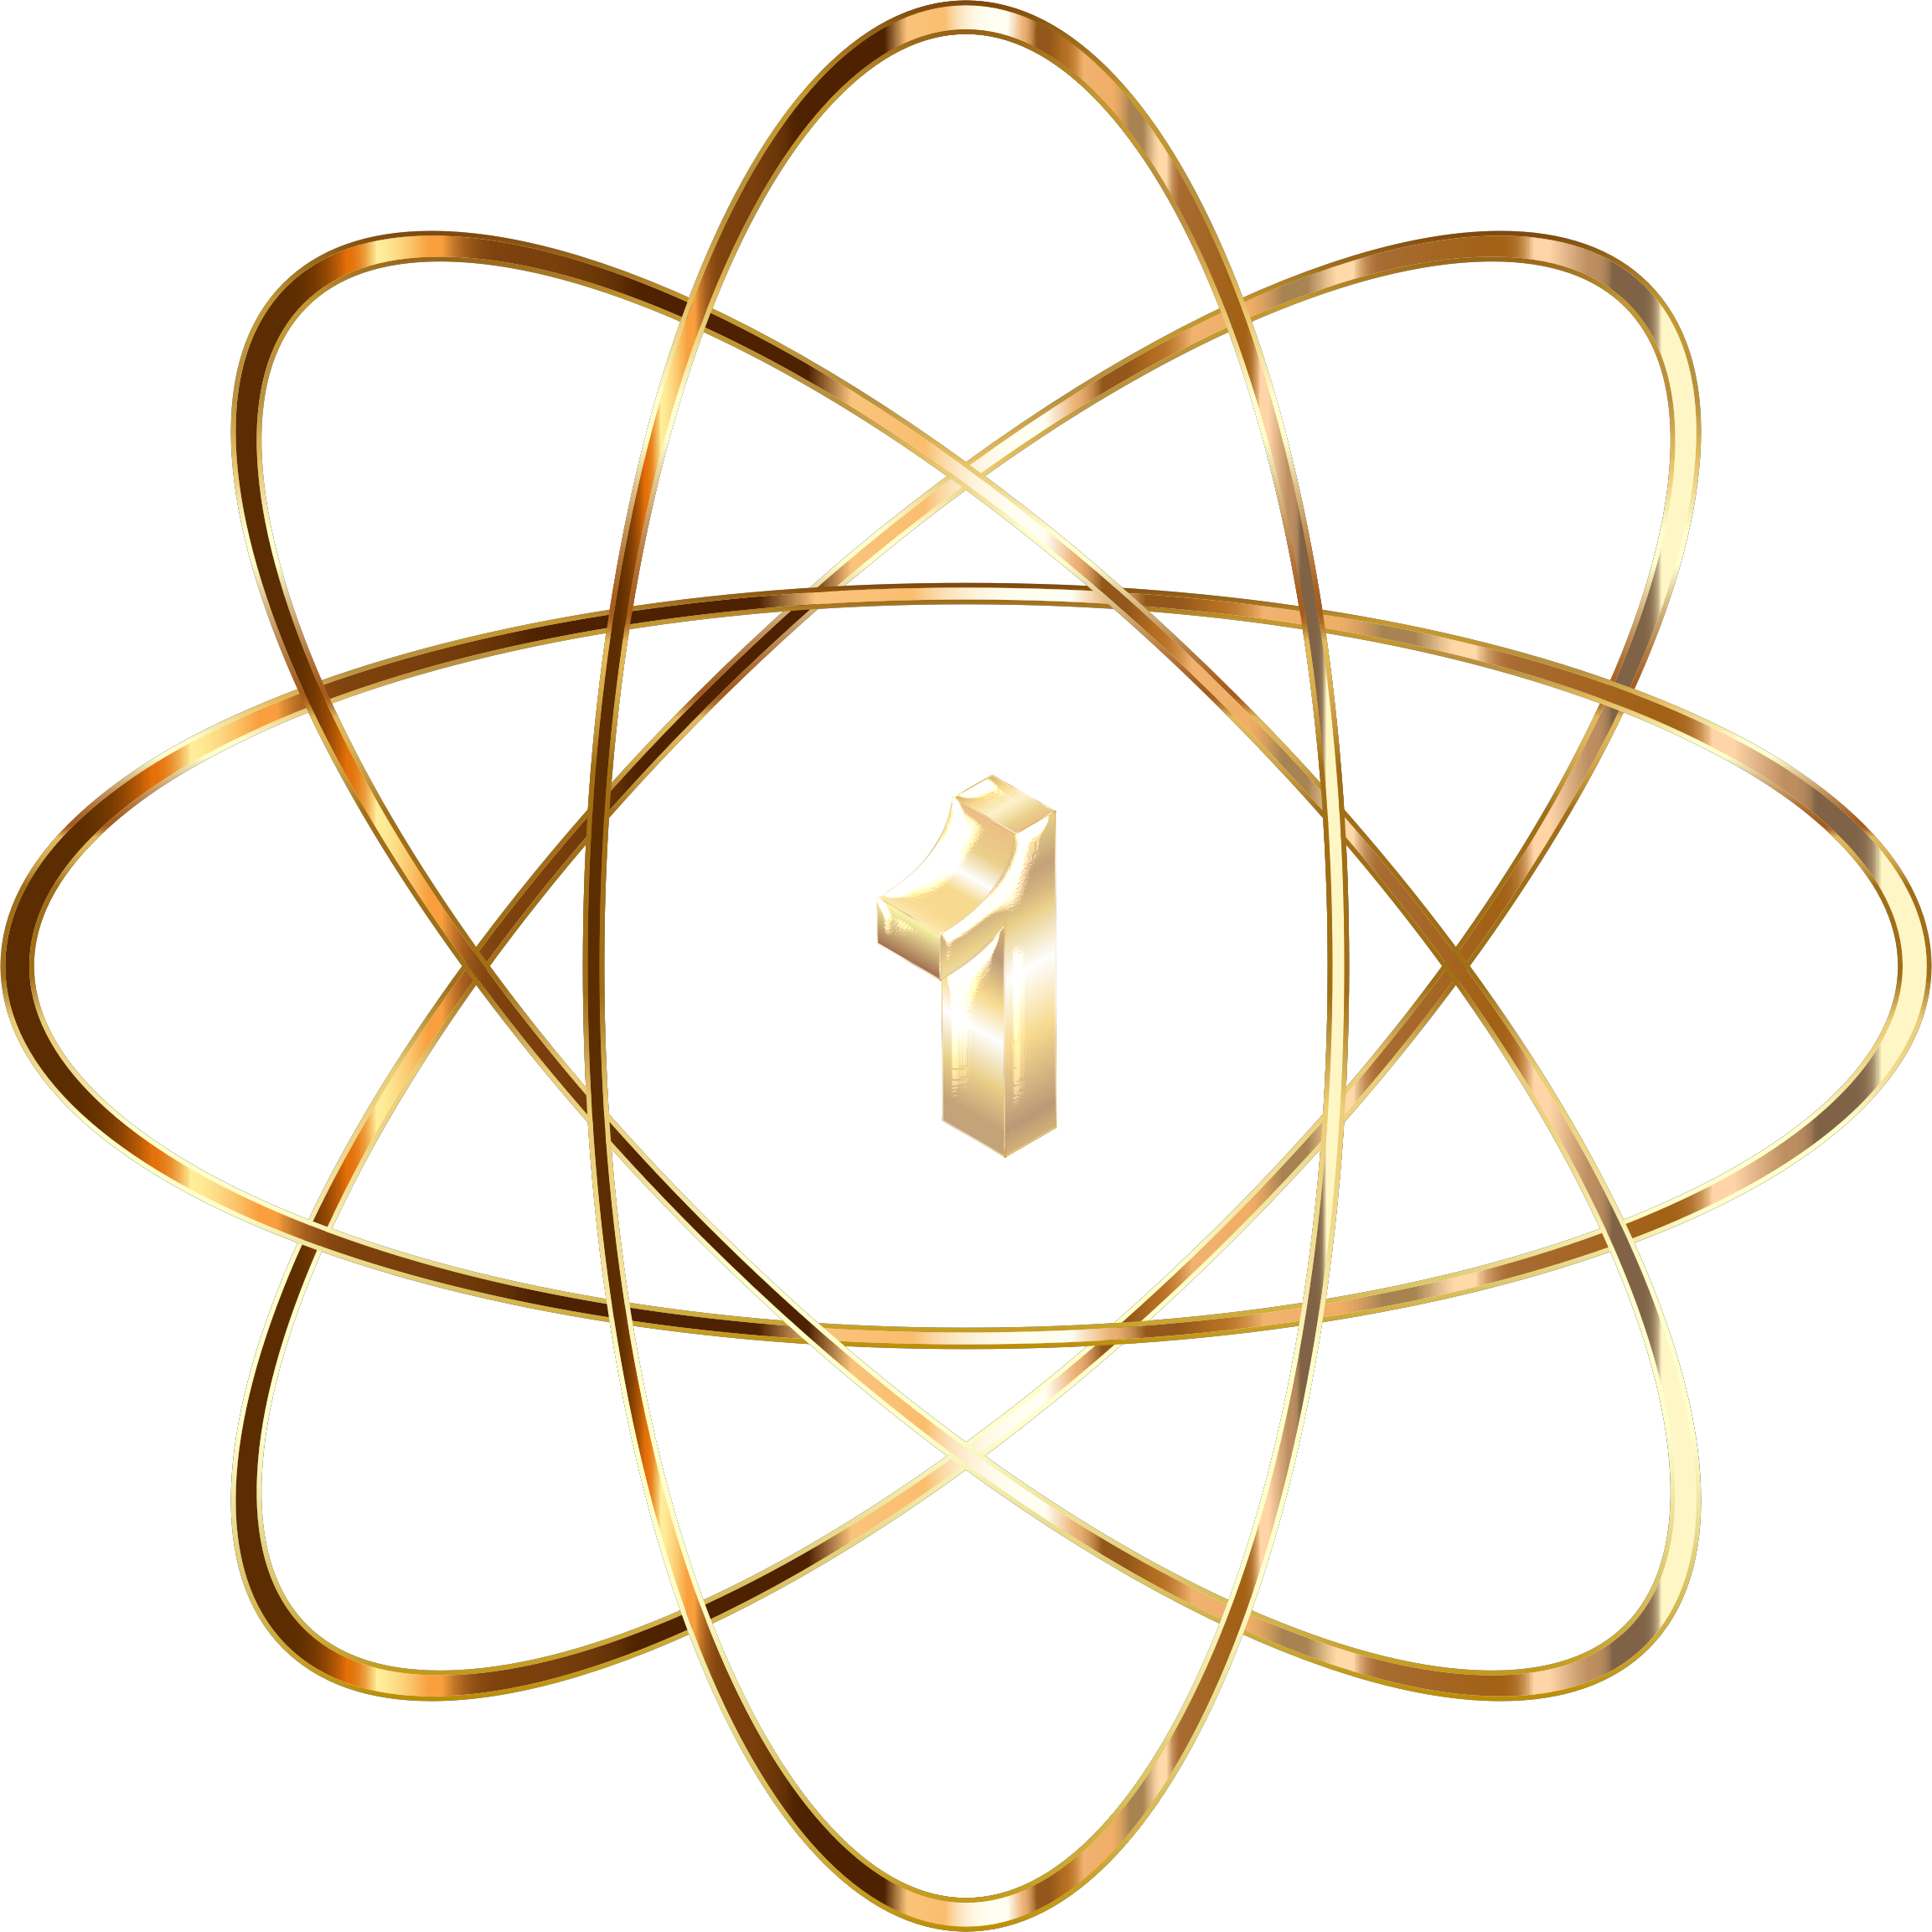 Gold no icons png. Atom clipart transparent background